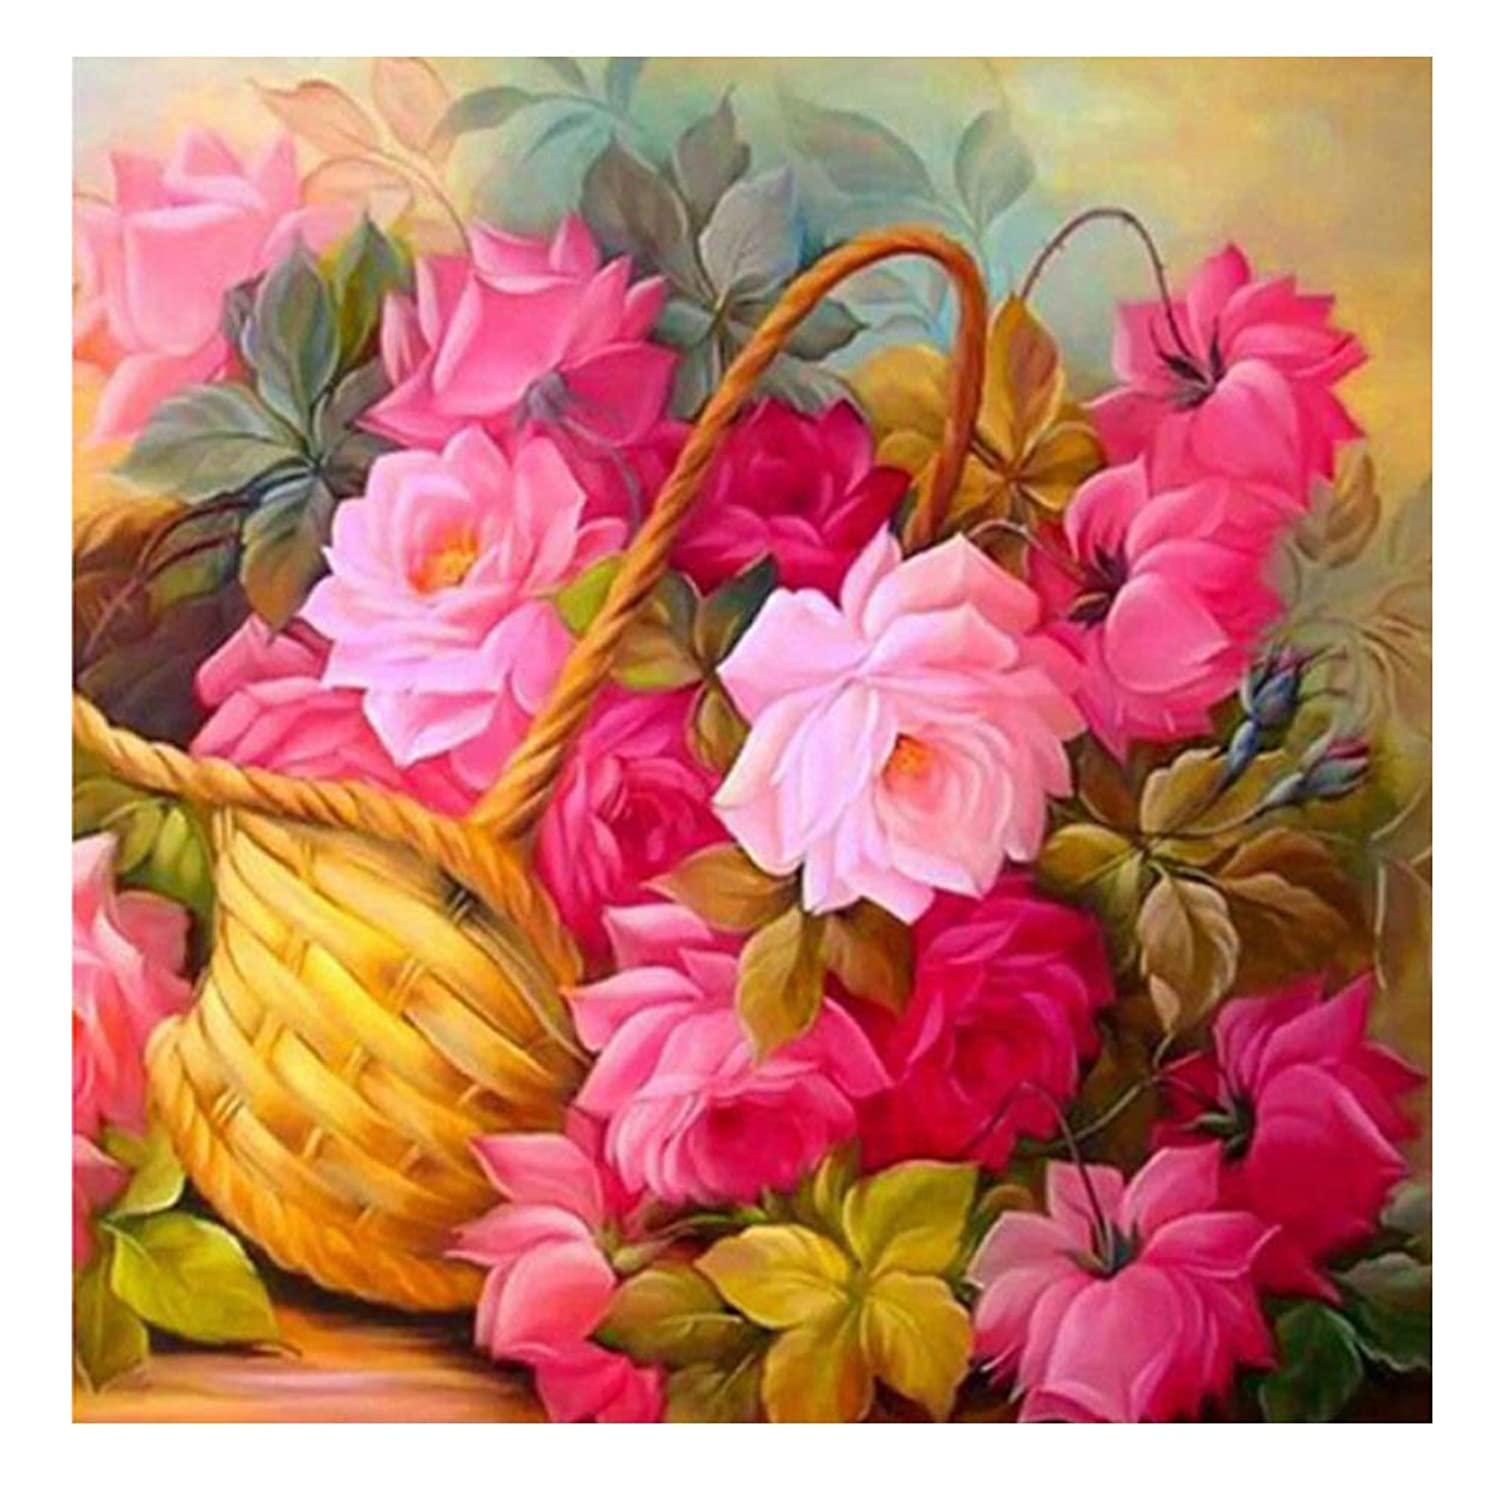 Flowers Diamond Painting 5D DIY Full Drill Diamond Drawing by Numbers Kits 11.8 x 11.8Inch